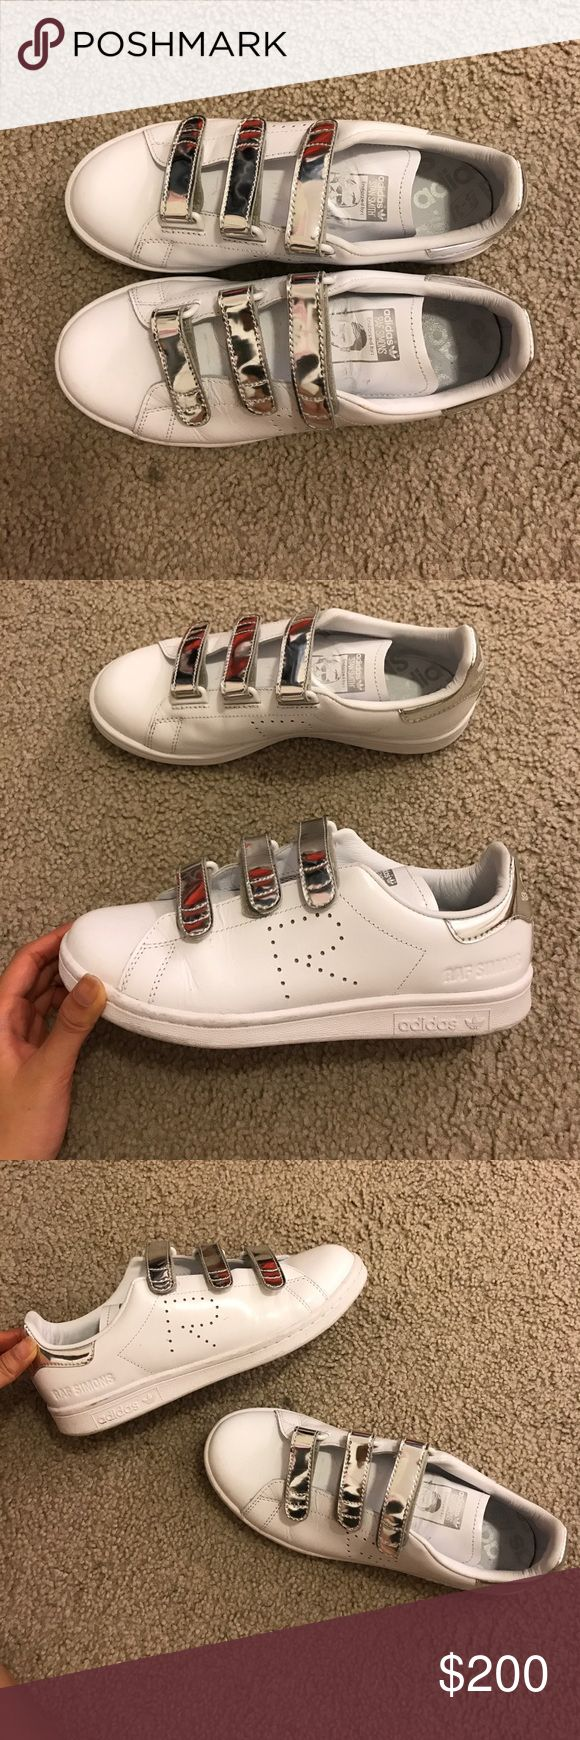 Adidas Stan smiths Raf Simons Lightly worn. Only worn 2-3 times. Men's size US 6 Women's size US 7. Raf Simons Shoes Sneakers